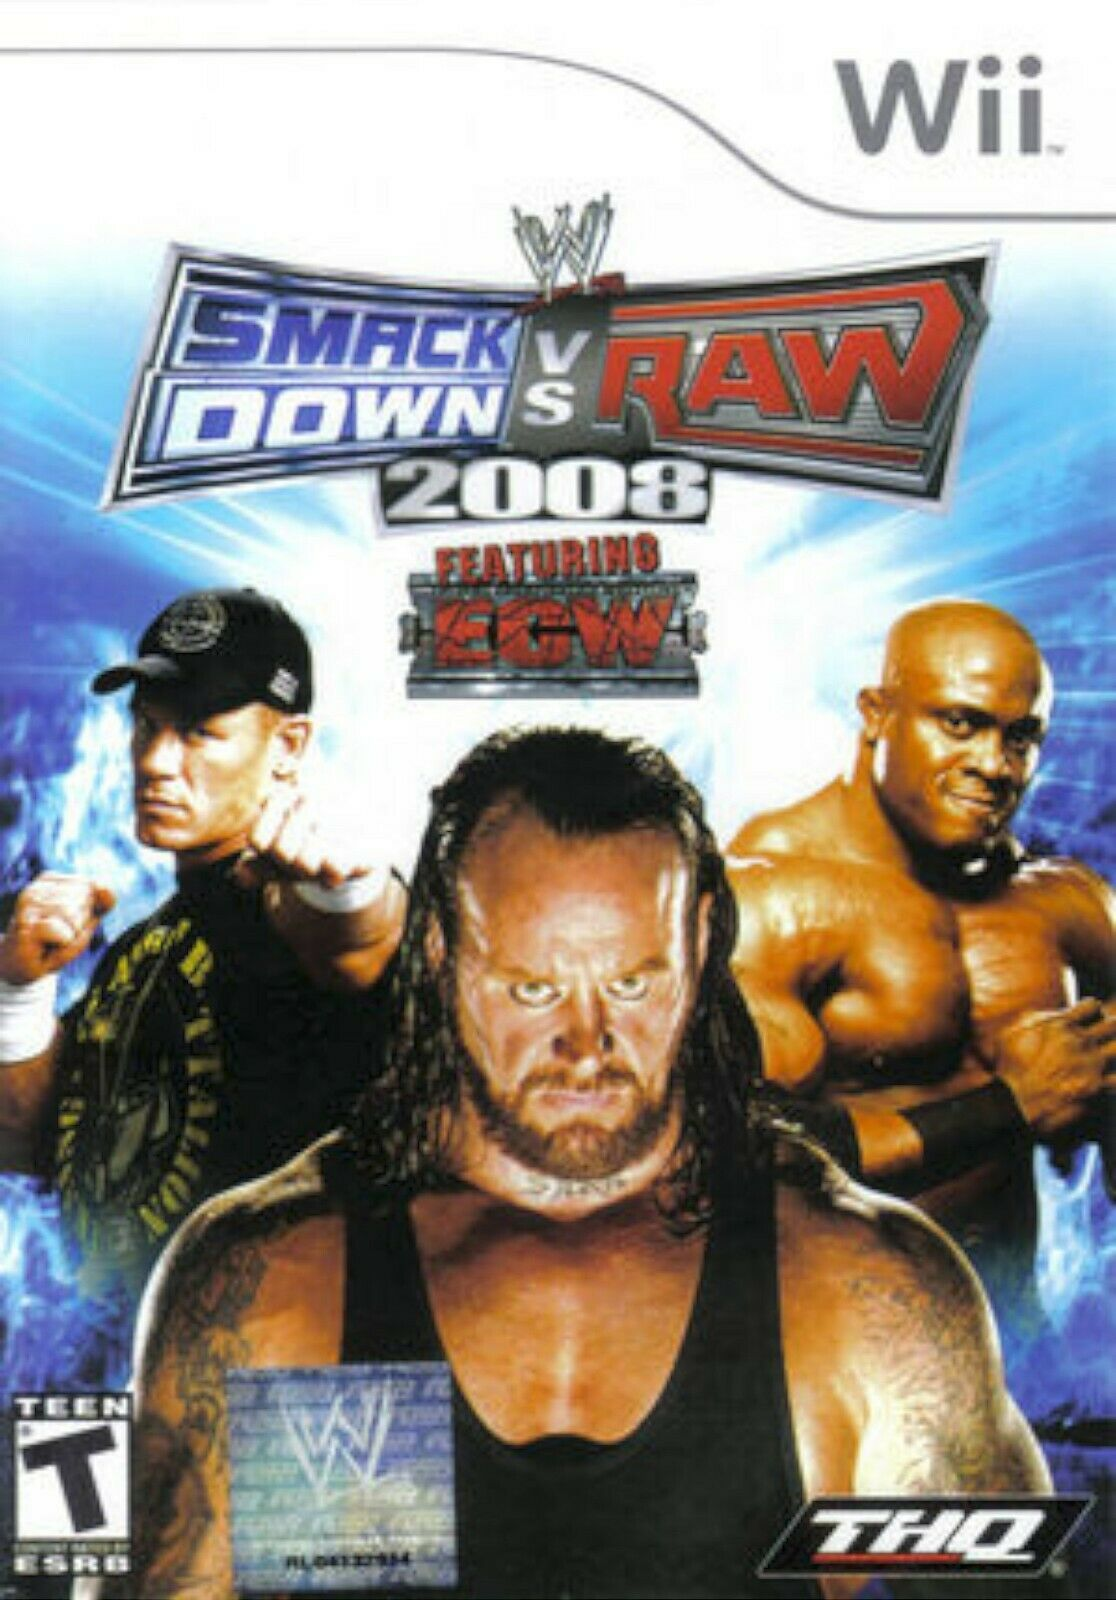 WWE SmackDown vs. Raw 2008 Featuring ECW (Nintendo Wii, 2007) image 1